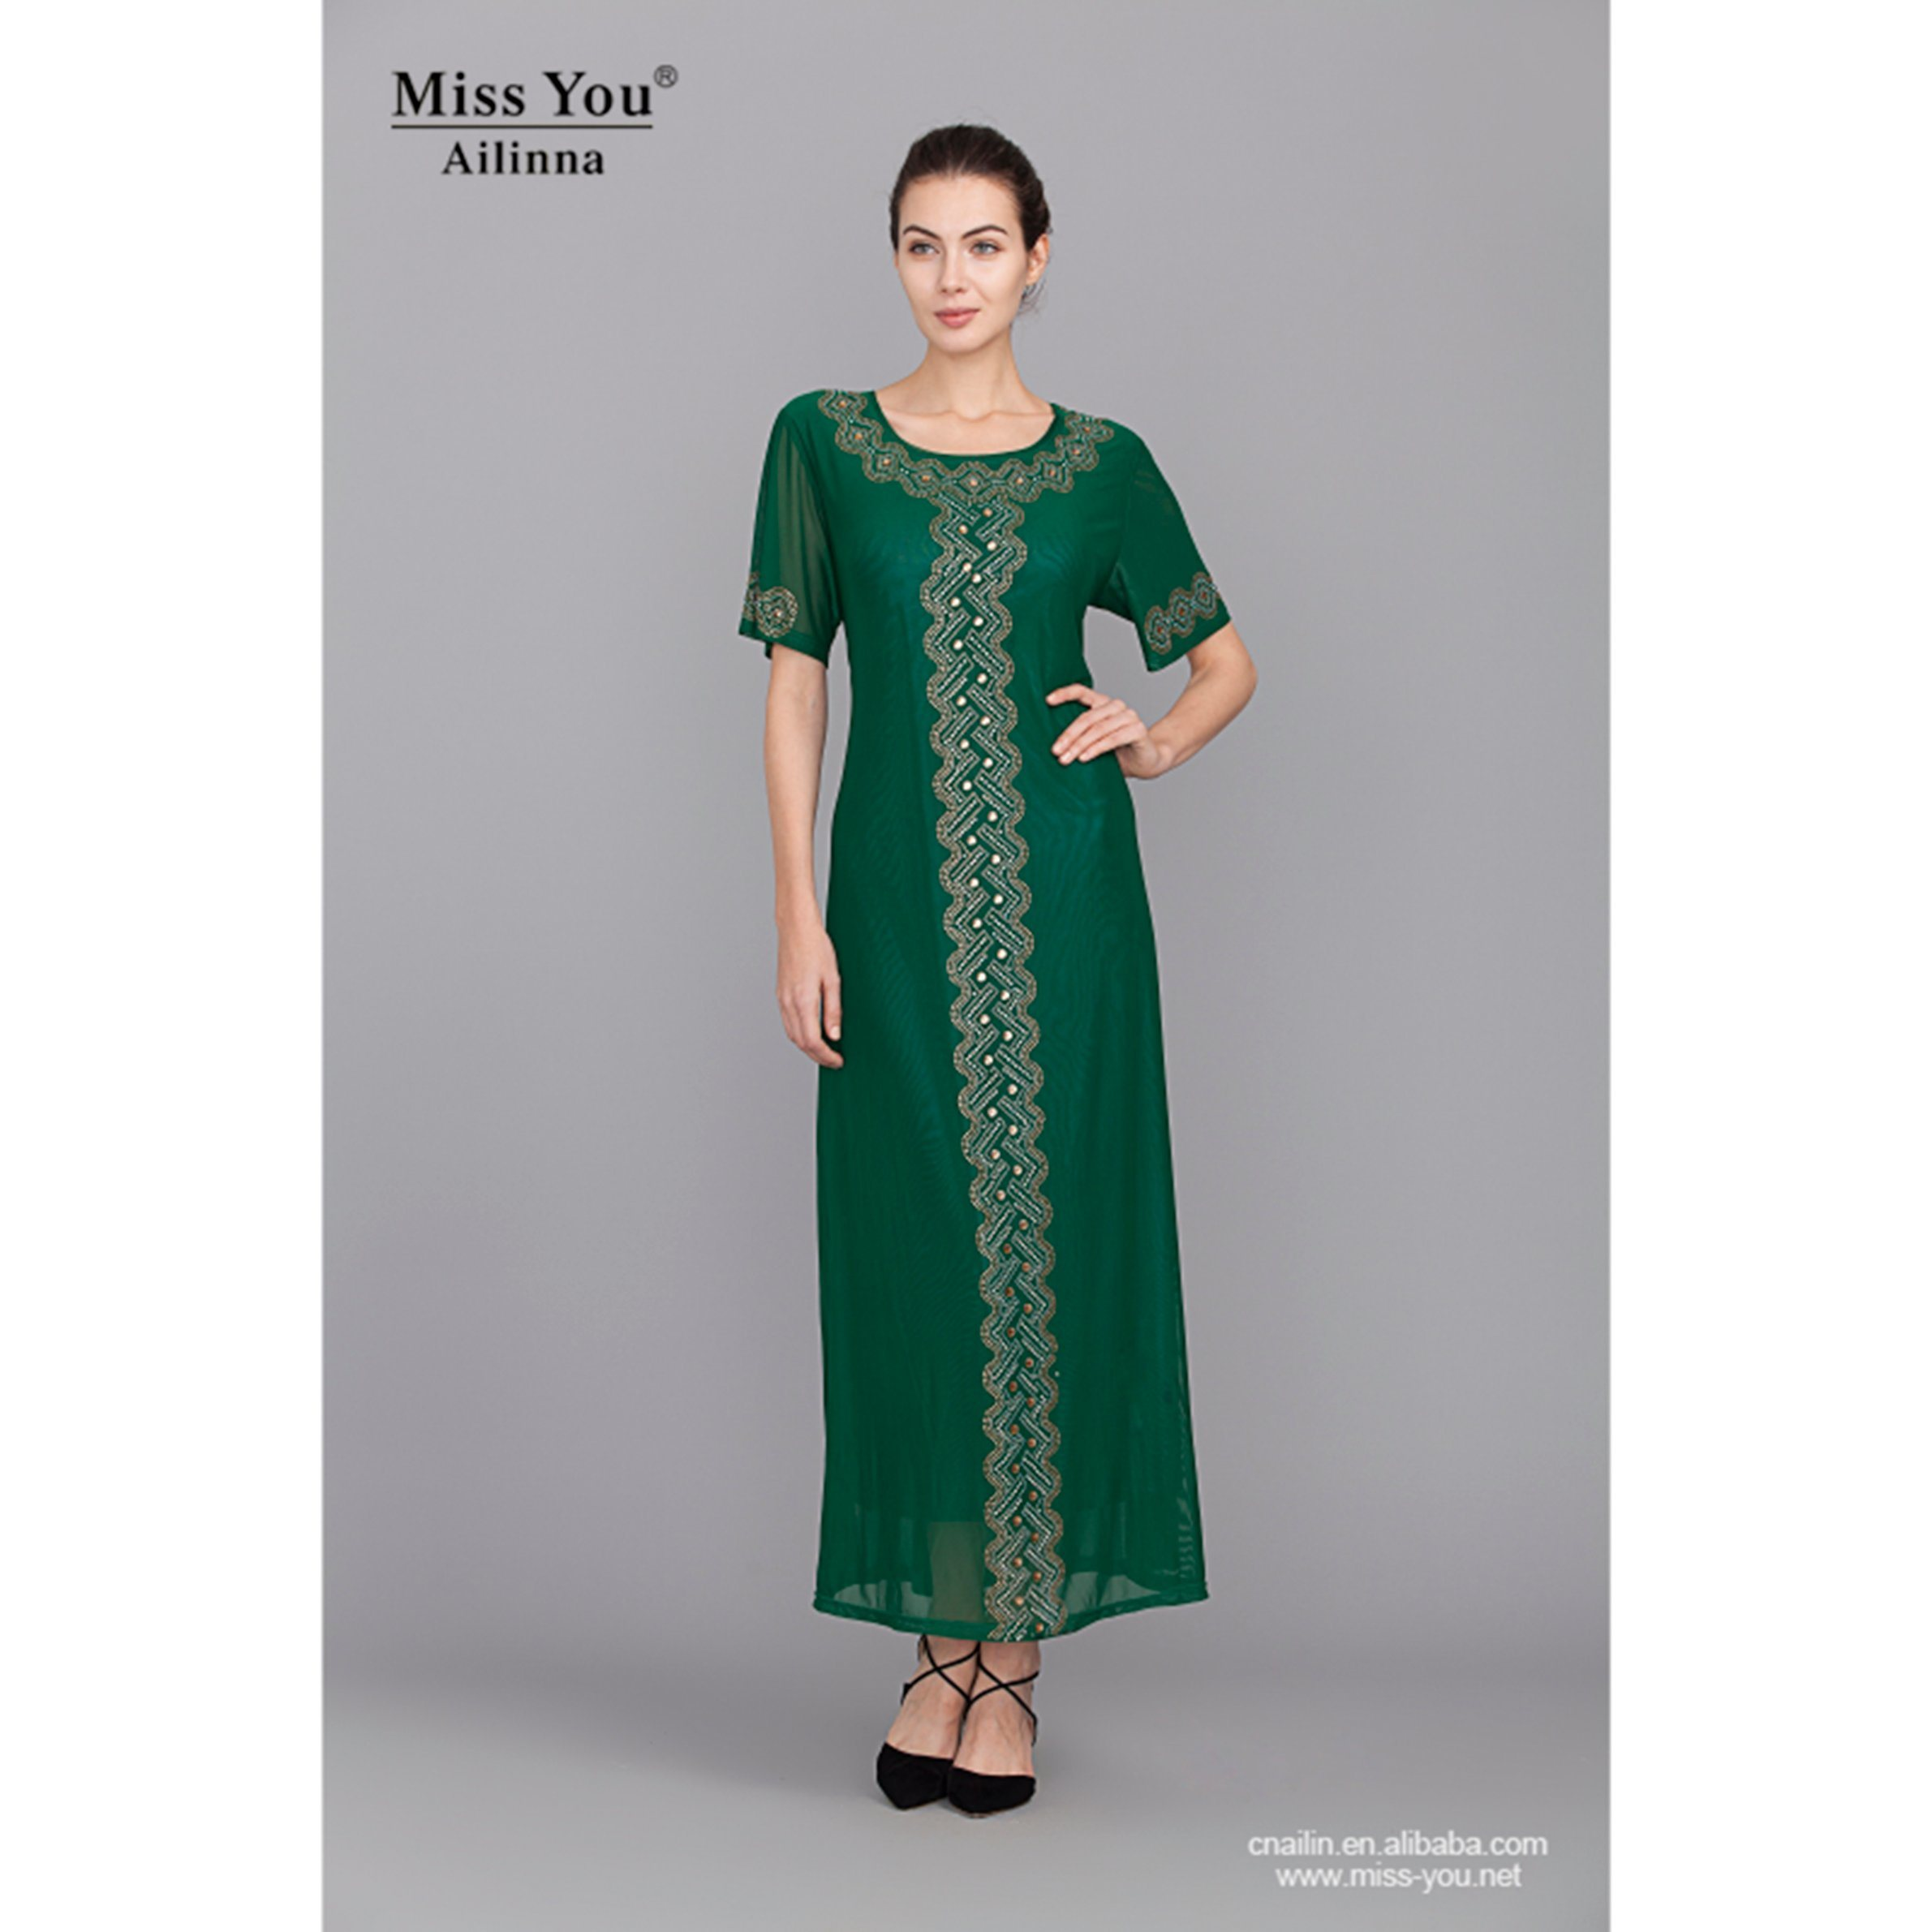 Miss You Ailinna 305167 OEM Elegant Ladies Maxi Dress Green Cool Dress